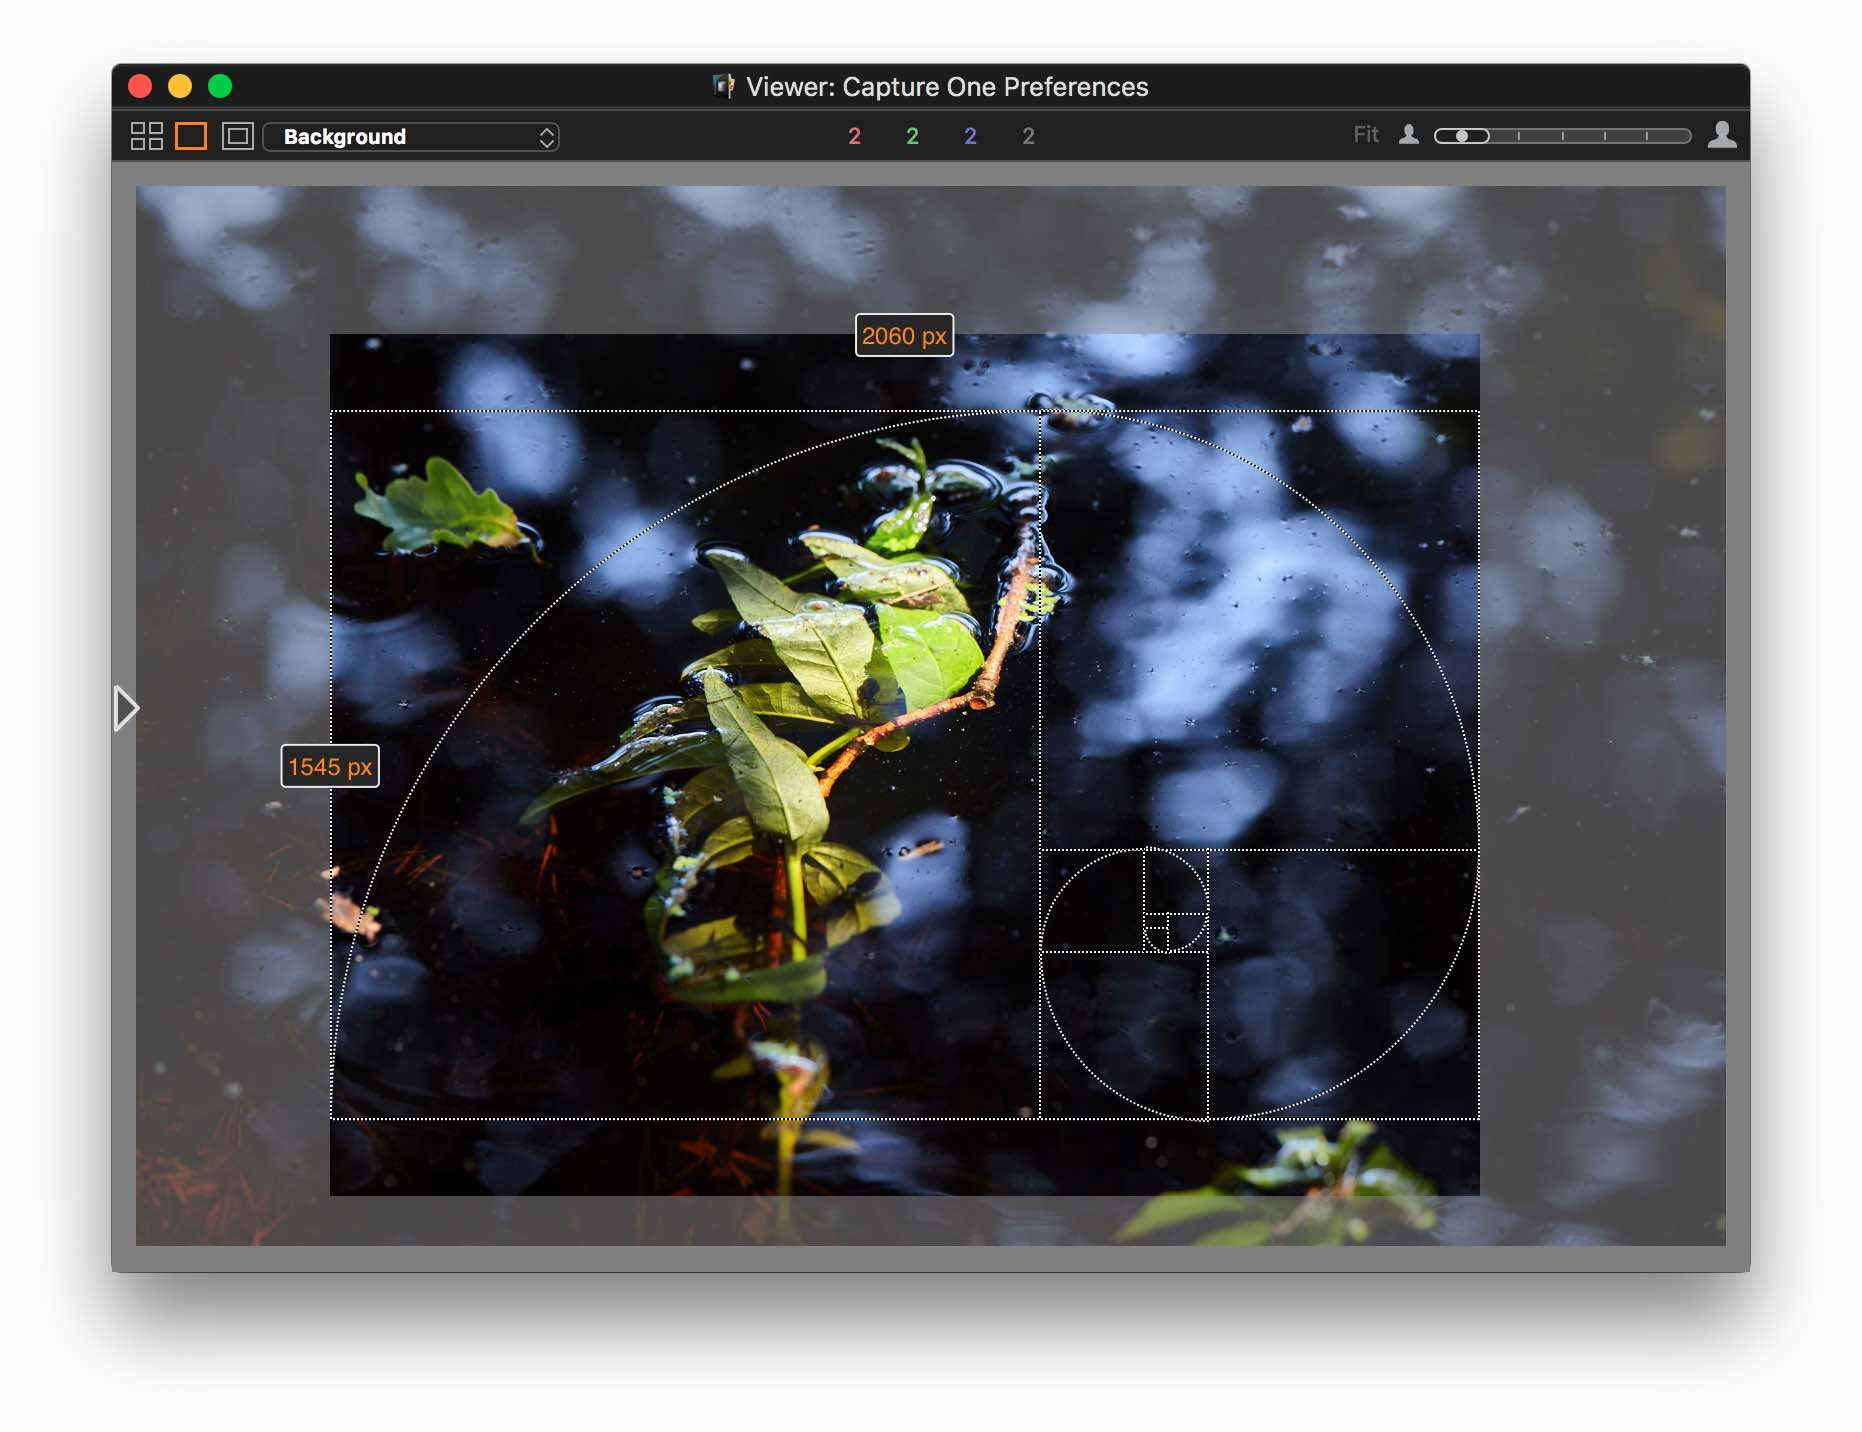 capture one pro 10, viewer, grid, fibonacci